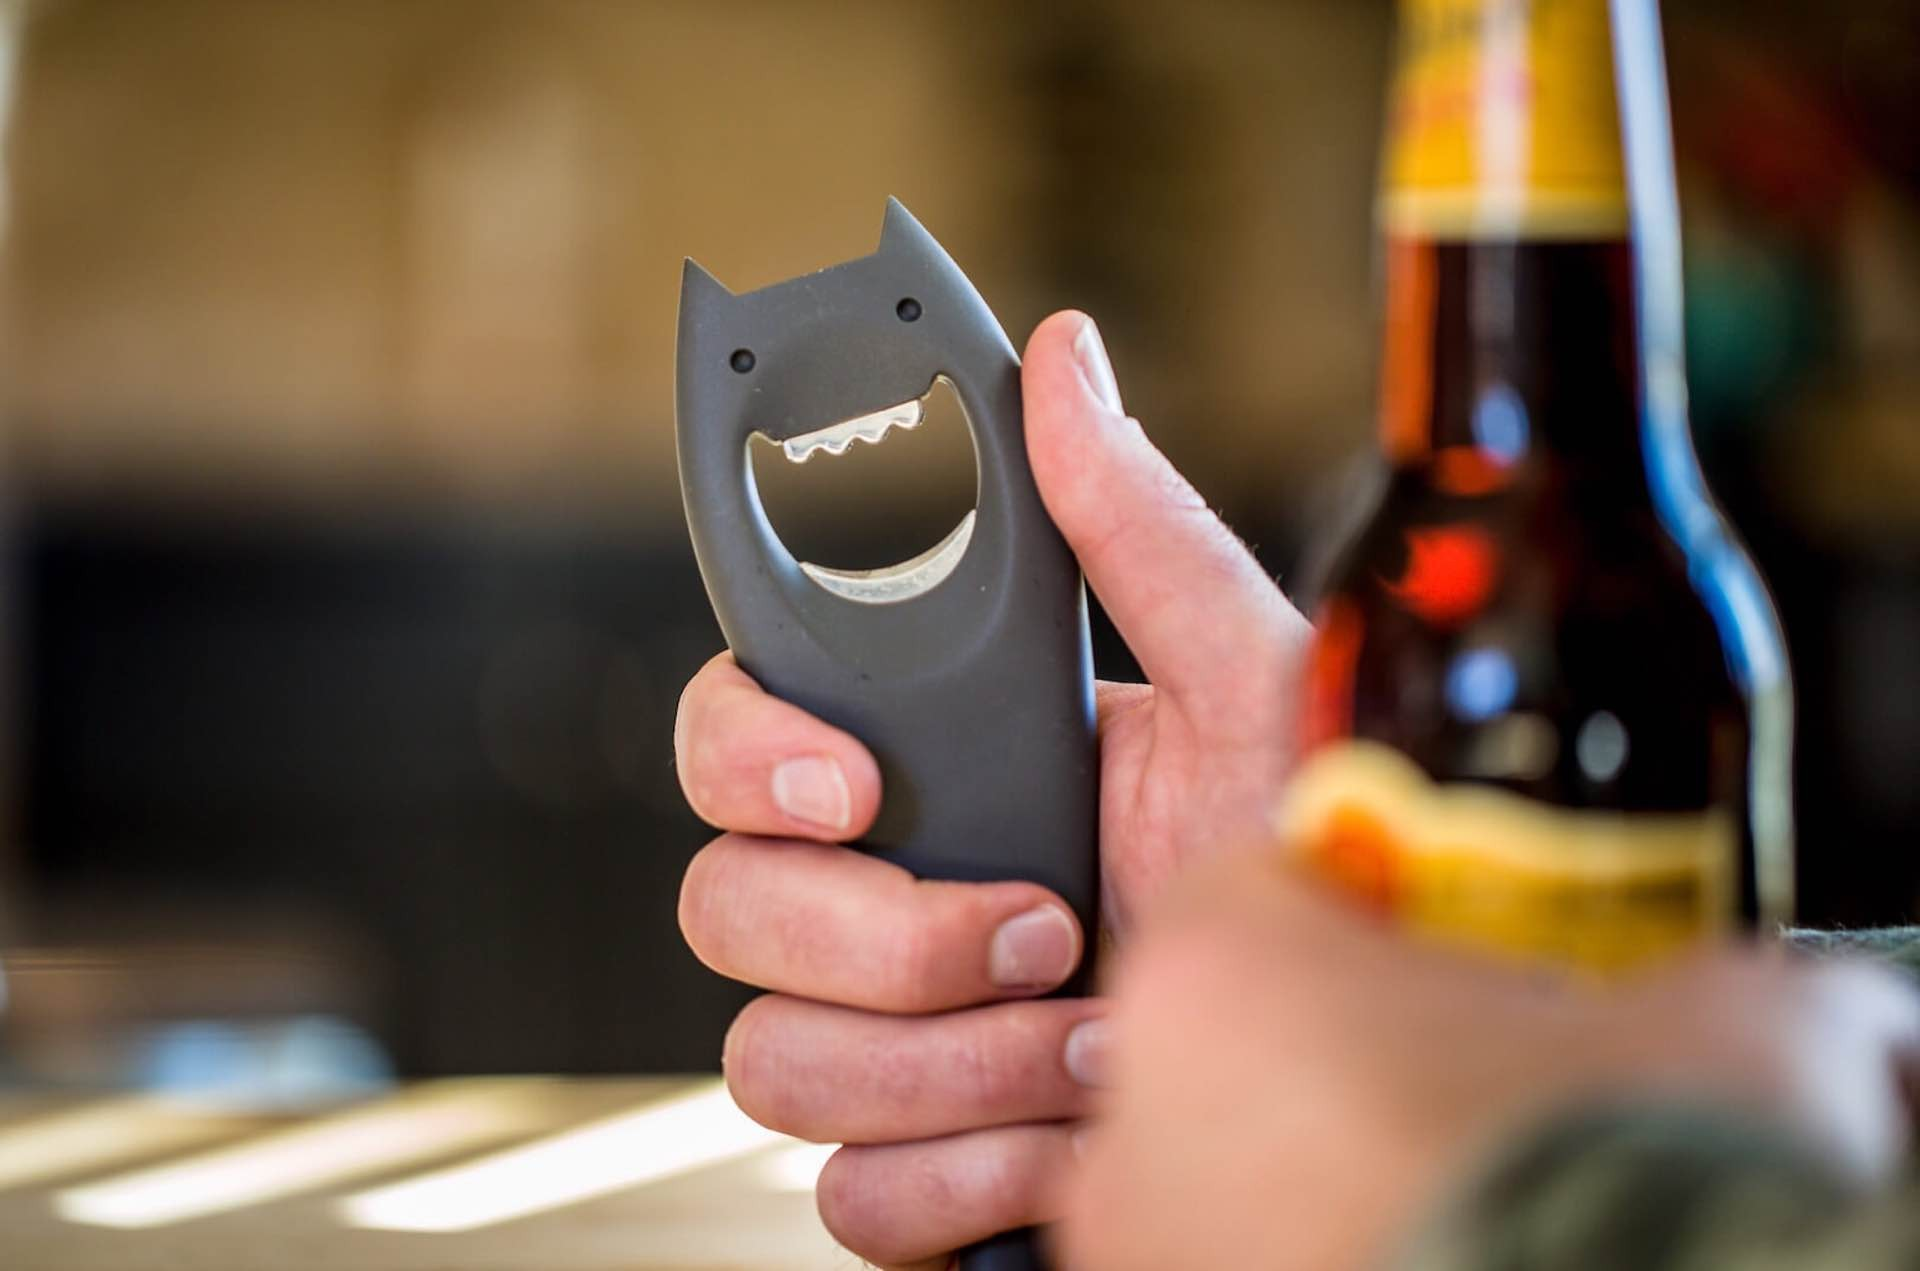 The Diabolix bottle opener by Alessi. ($19, available in six colors)